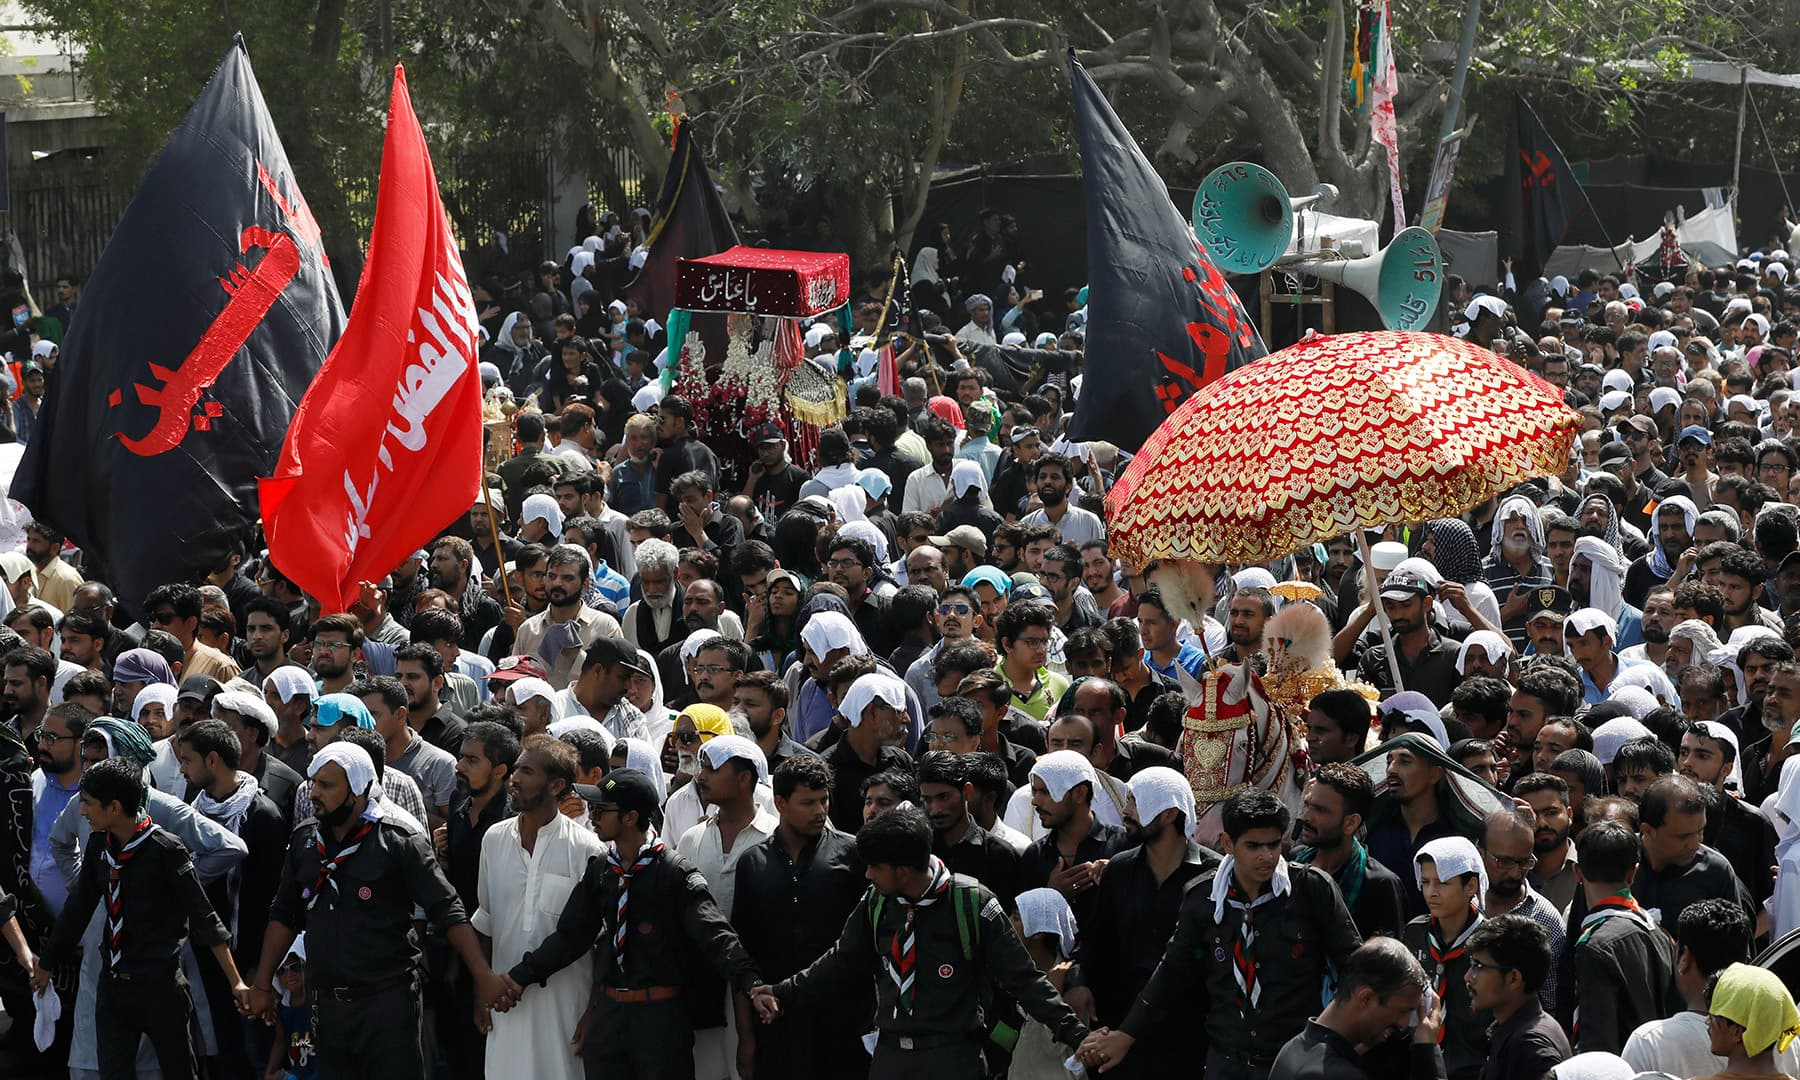 Shia Muslims take part in the religious procession of Youm-i-Ali in Karachi. — Reuters